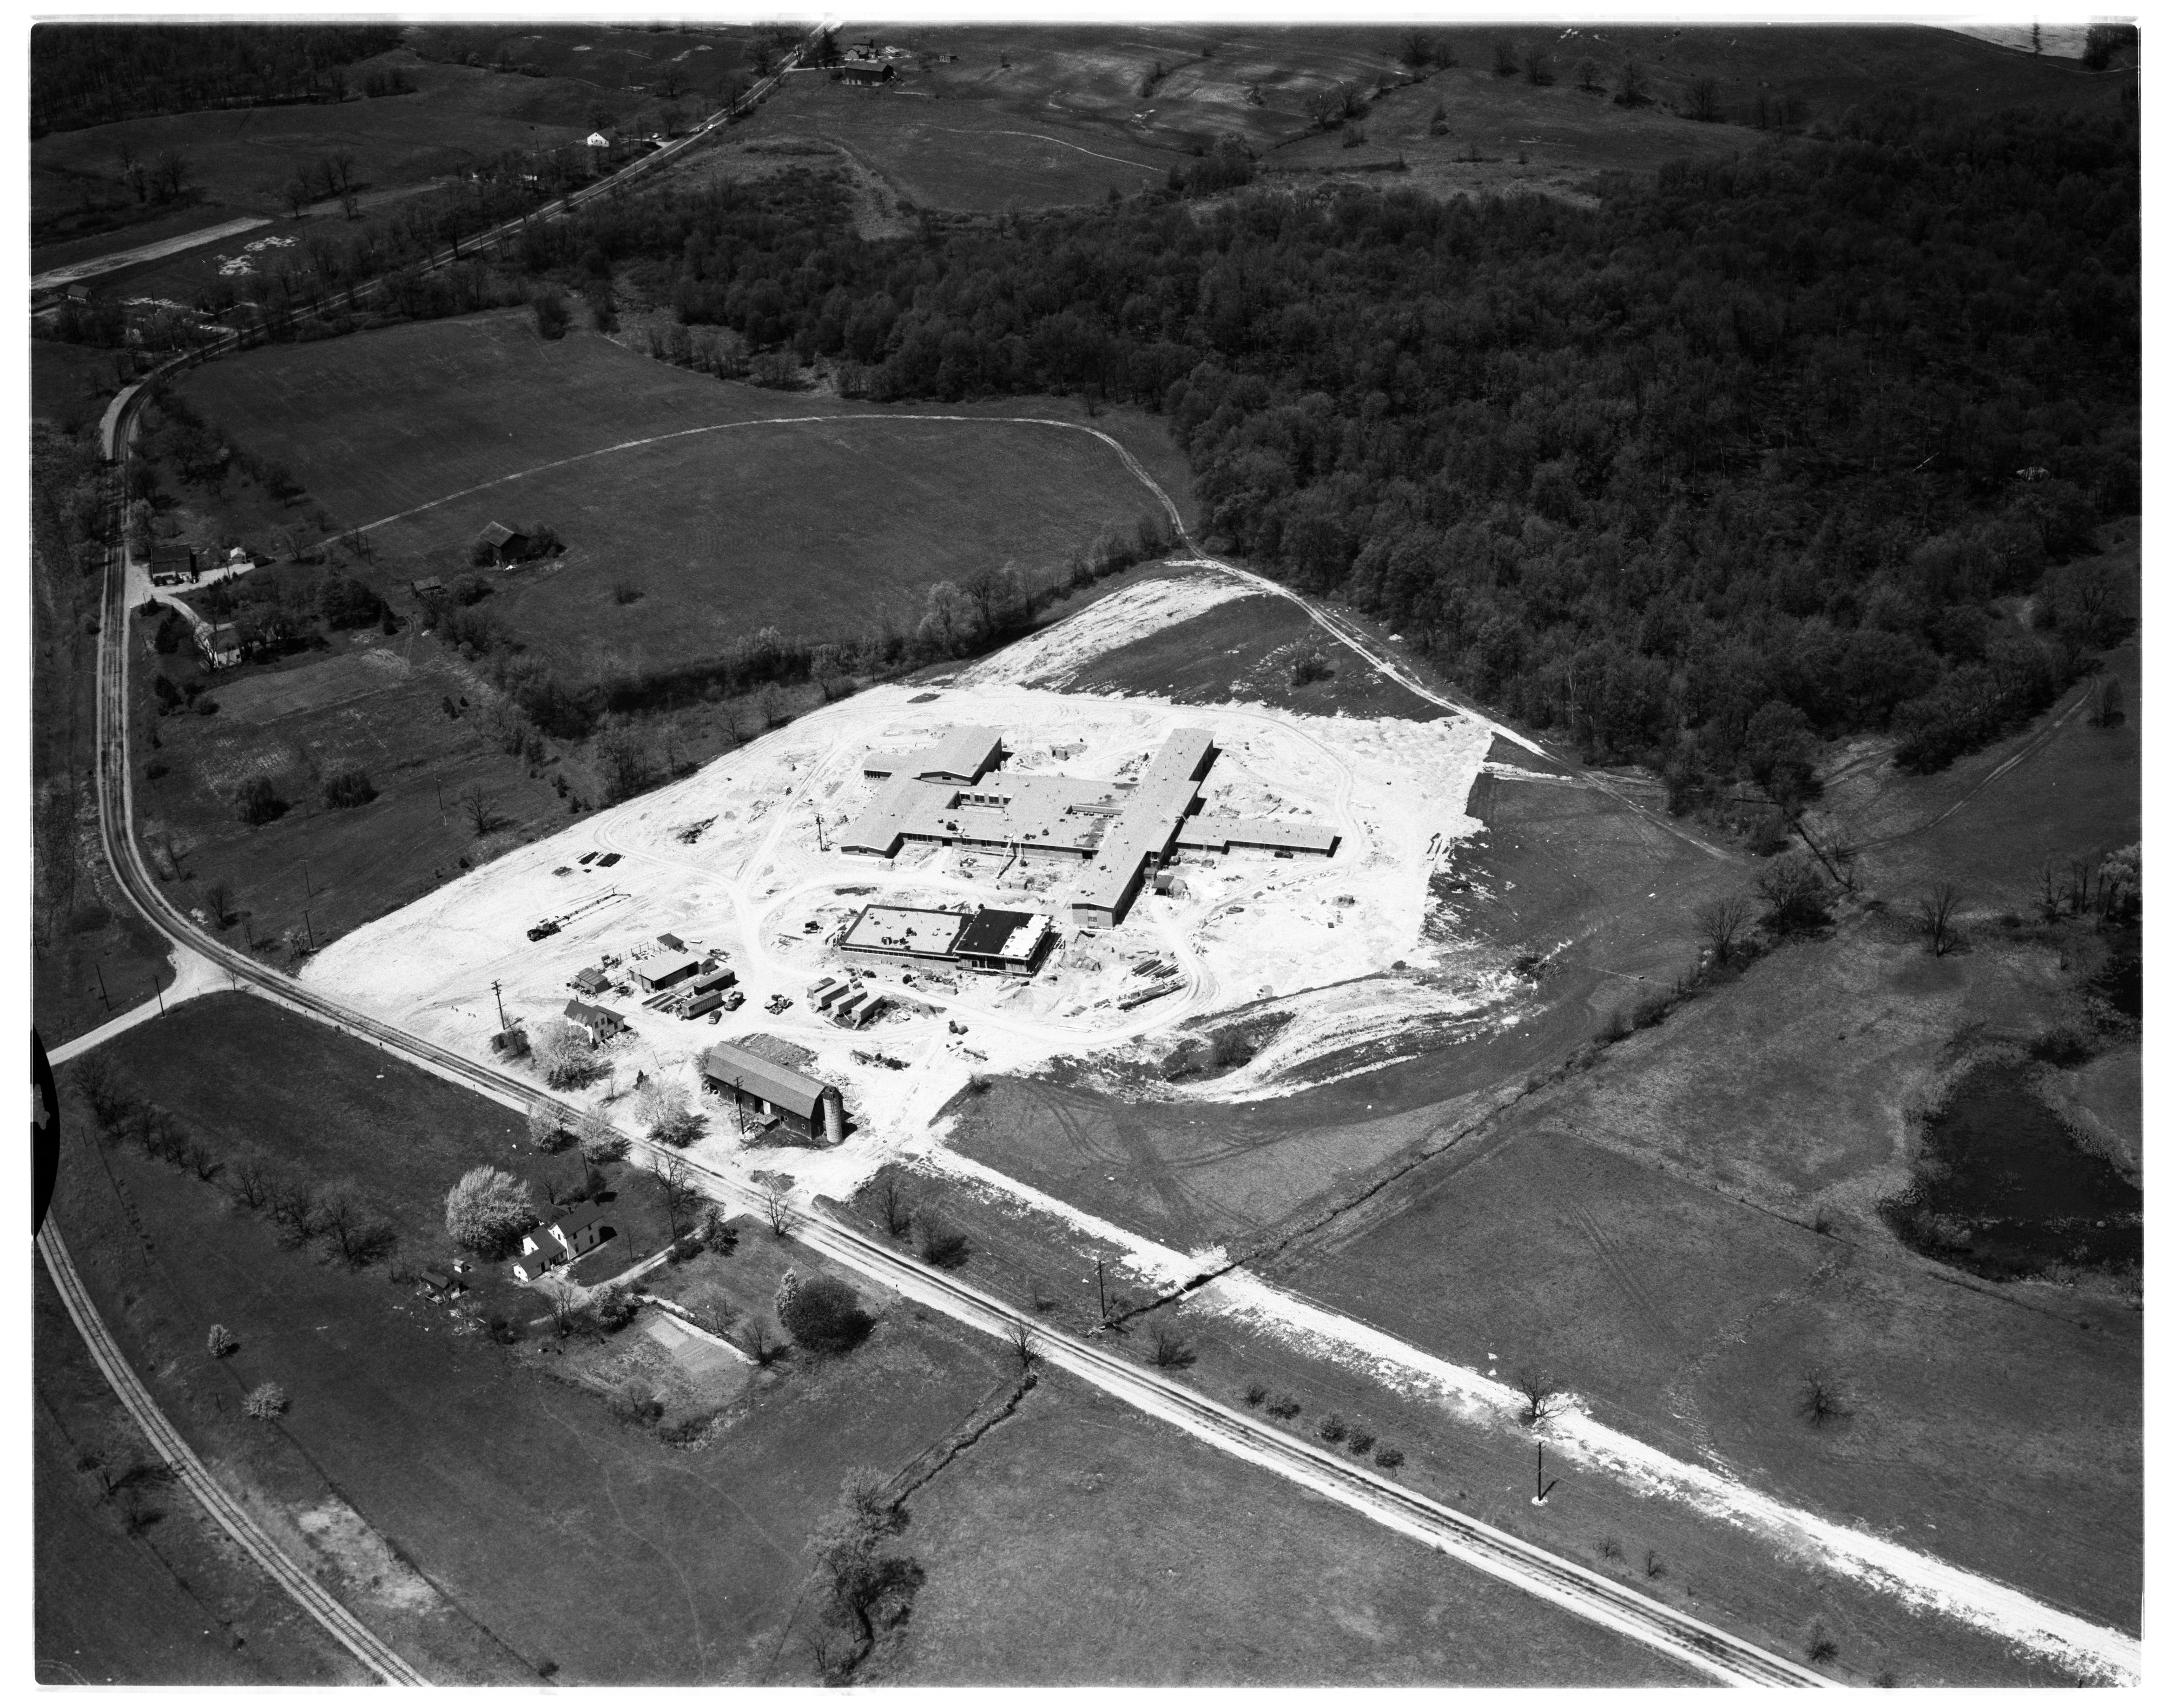 Aerial Photograph of the new Boys Vocational School, Livingston County, May 1959 image